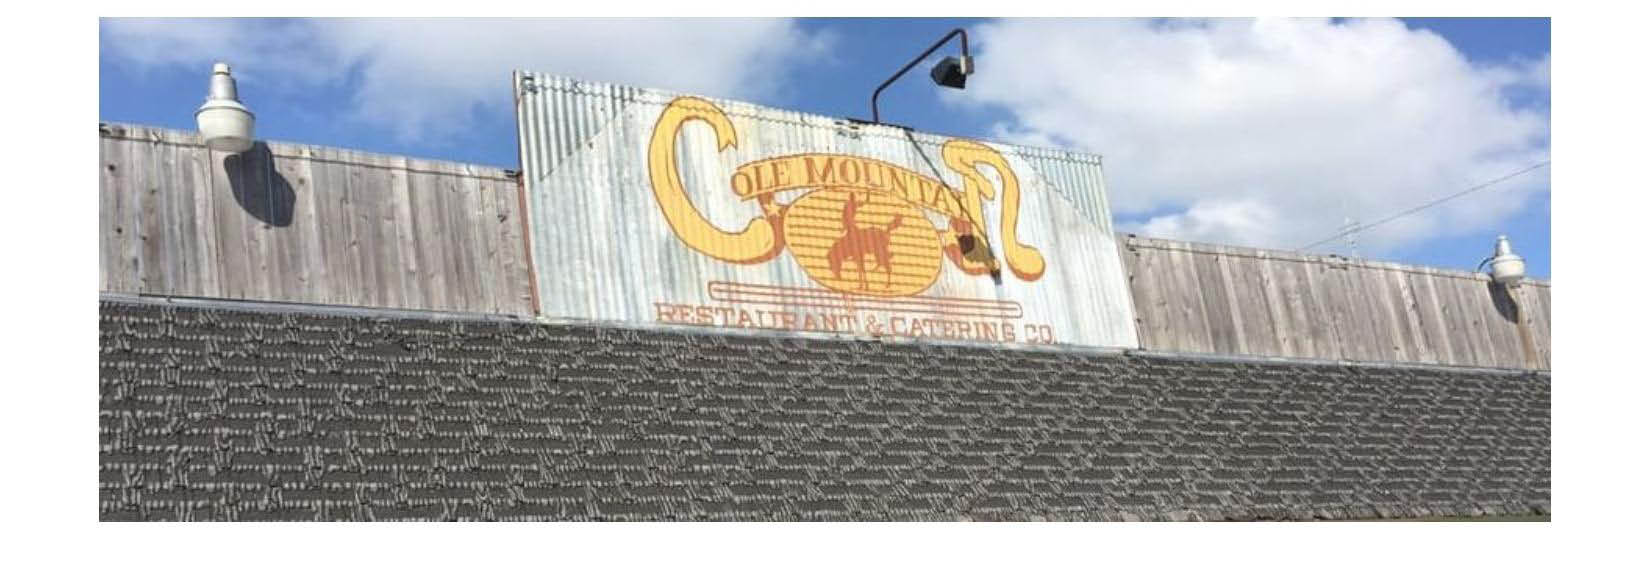 cole-mountain-feed-store-rockwall-tx-banner